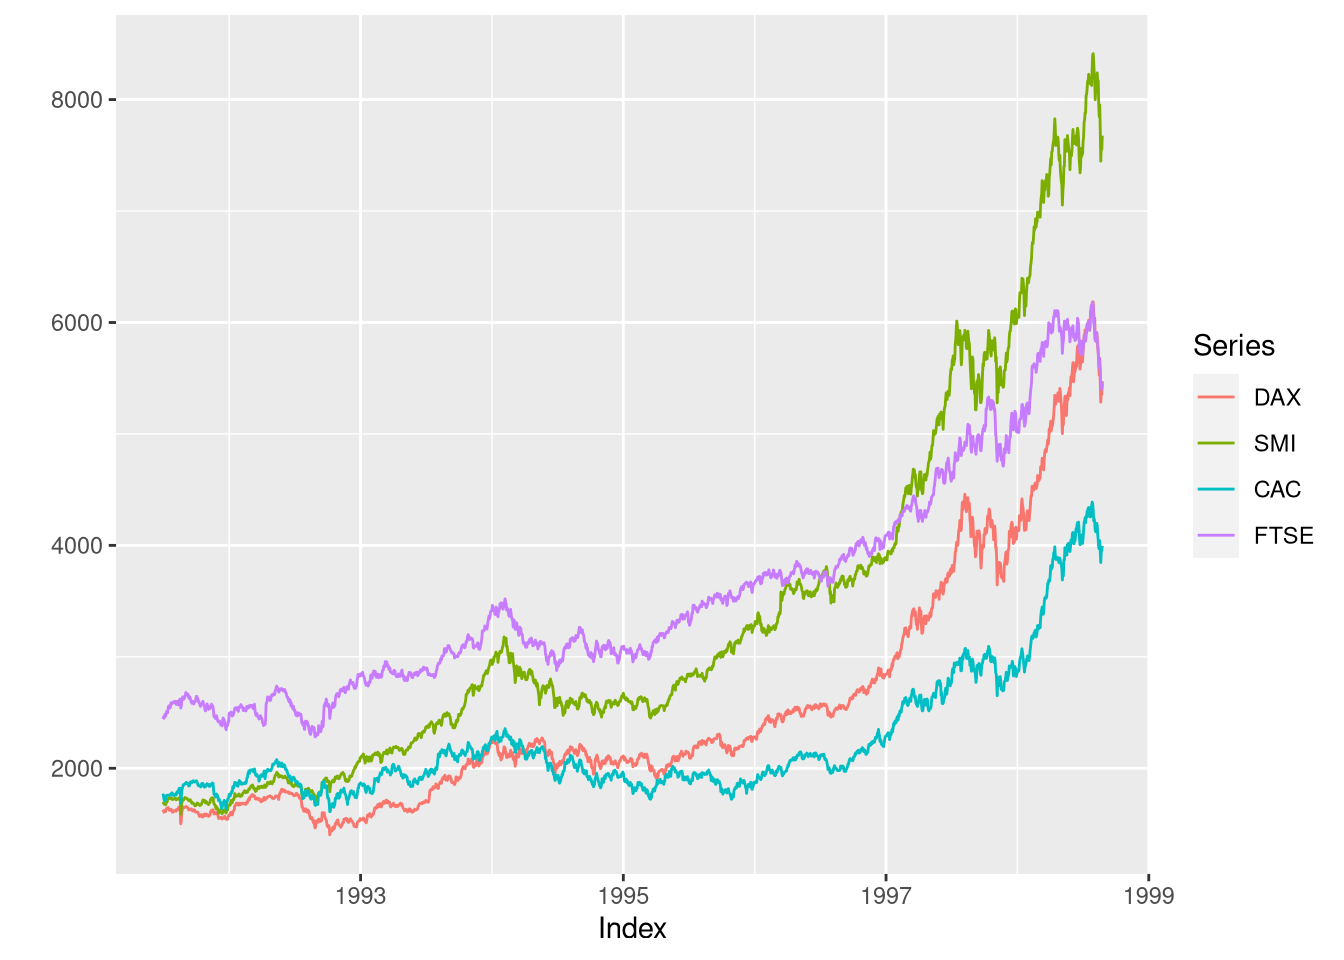 Visualizing Time-Series Data with Line Plots